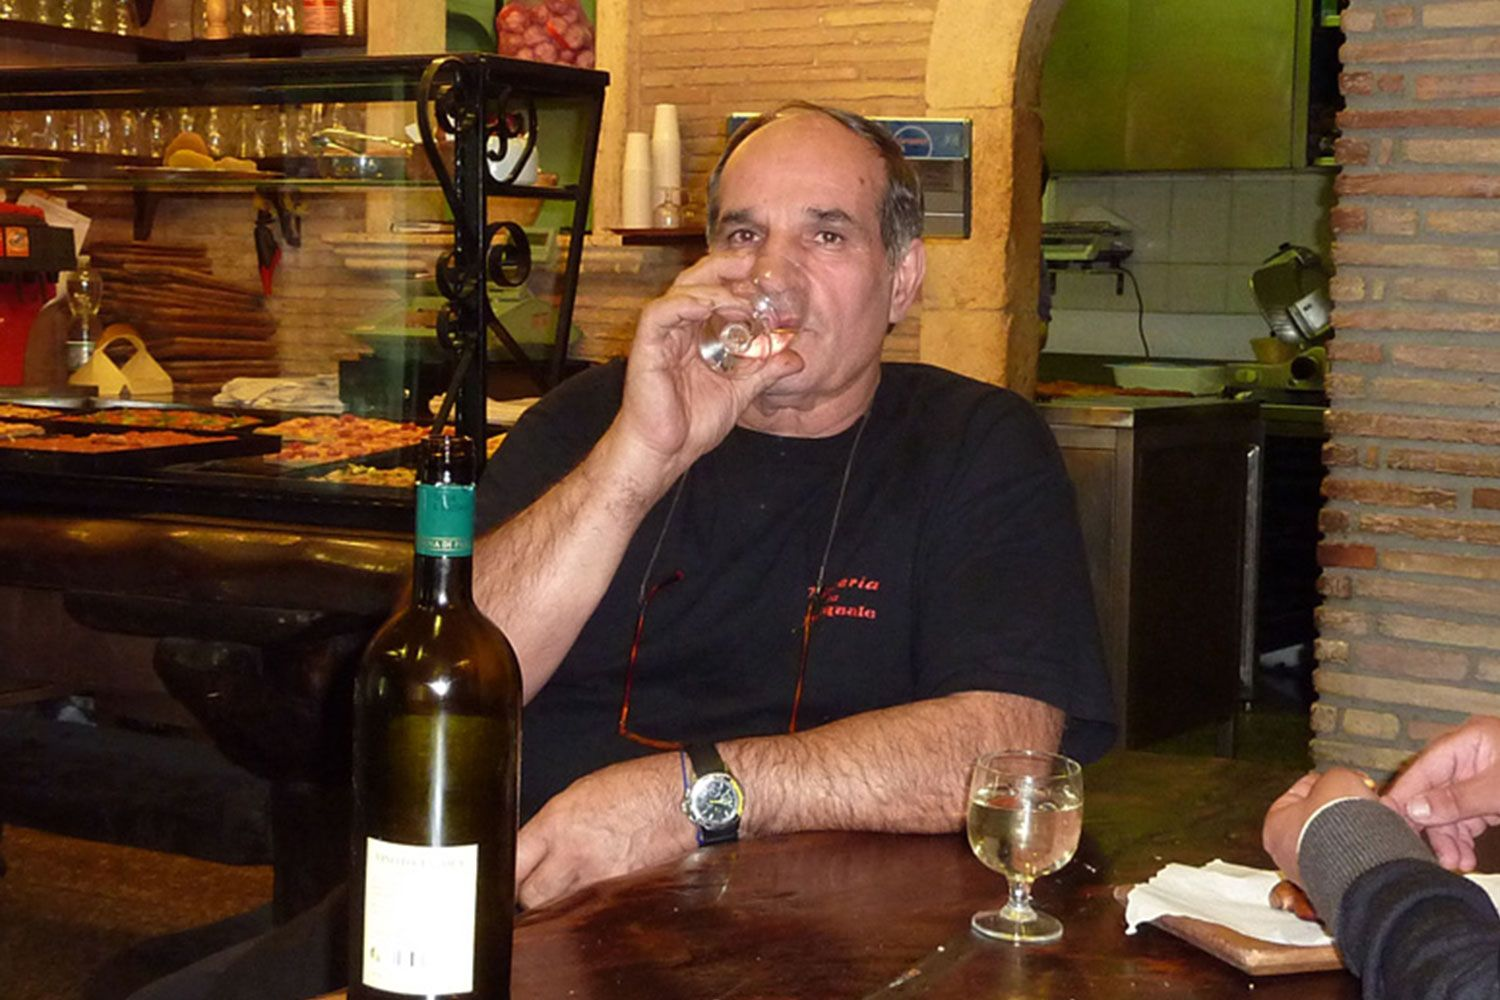 Pasquale enjoying a wine in his pizzeria in Rome.